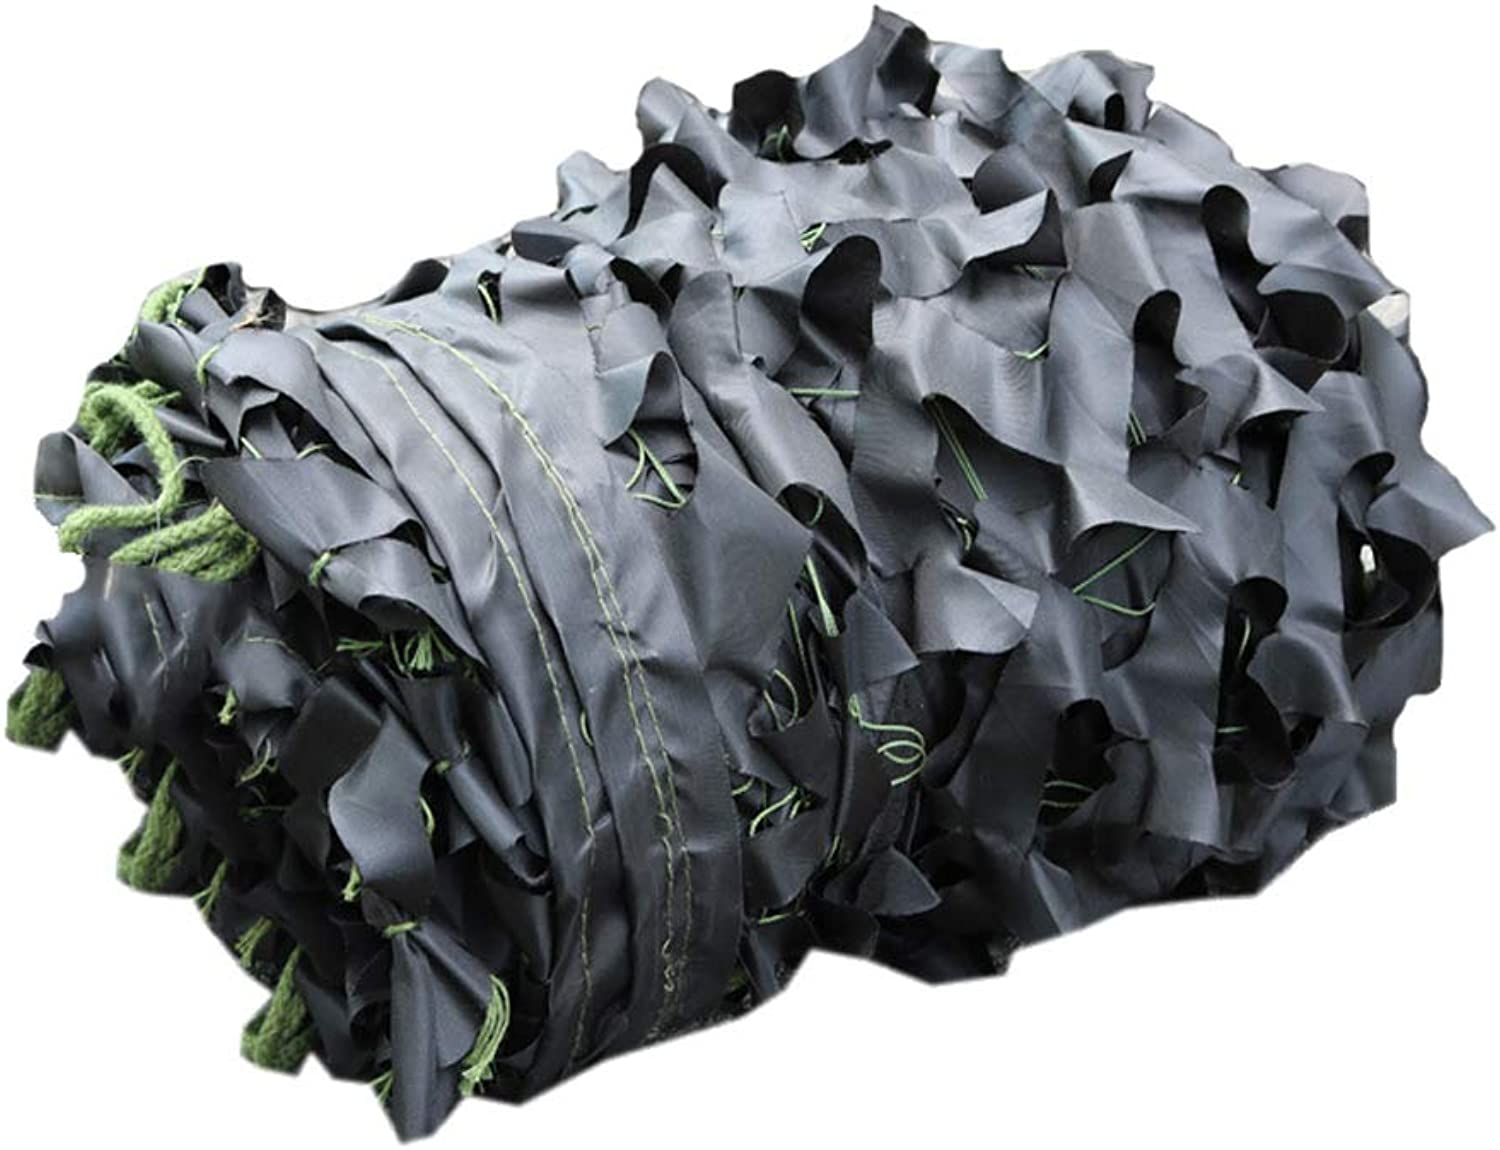 Pure Black Camouflage net  Woodland Army Things Network, Camouflage net, Perfect Camping Shooting Hunt, Army Things Theme Party Decoration  a Variety of Sizes to Choose from